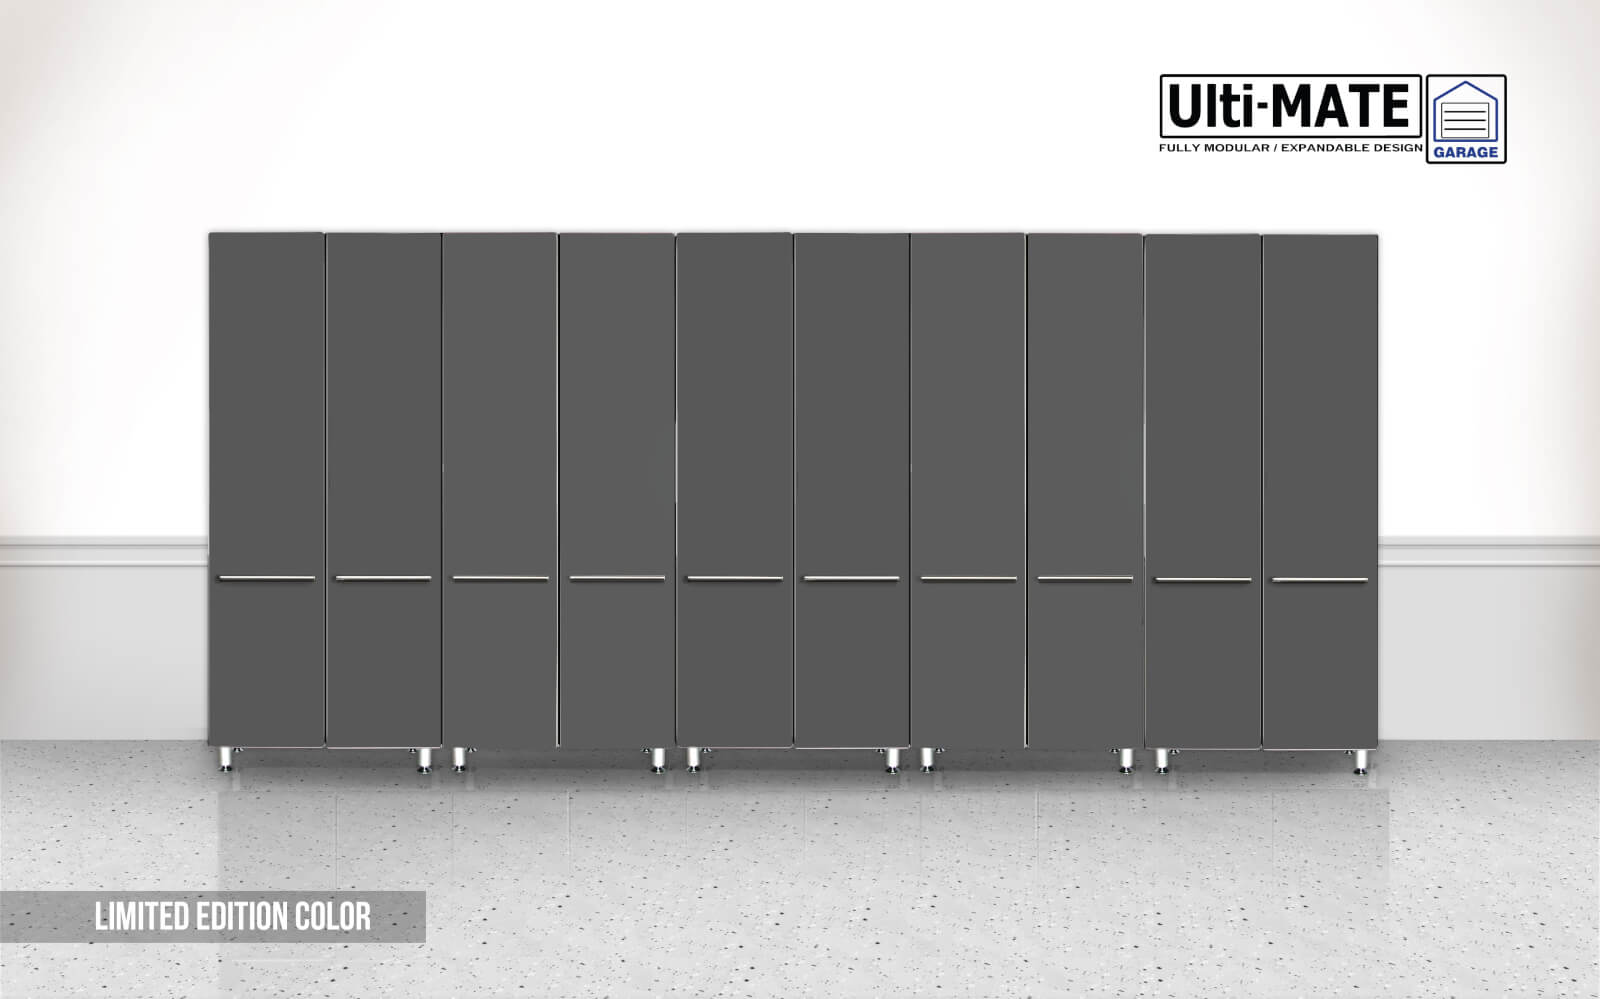 UltiMate Storage Limited Edition Cabinets  Garage